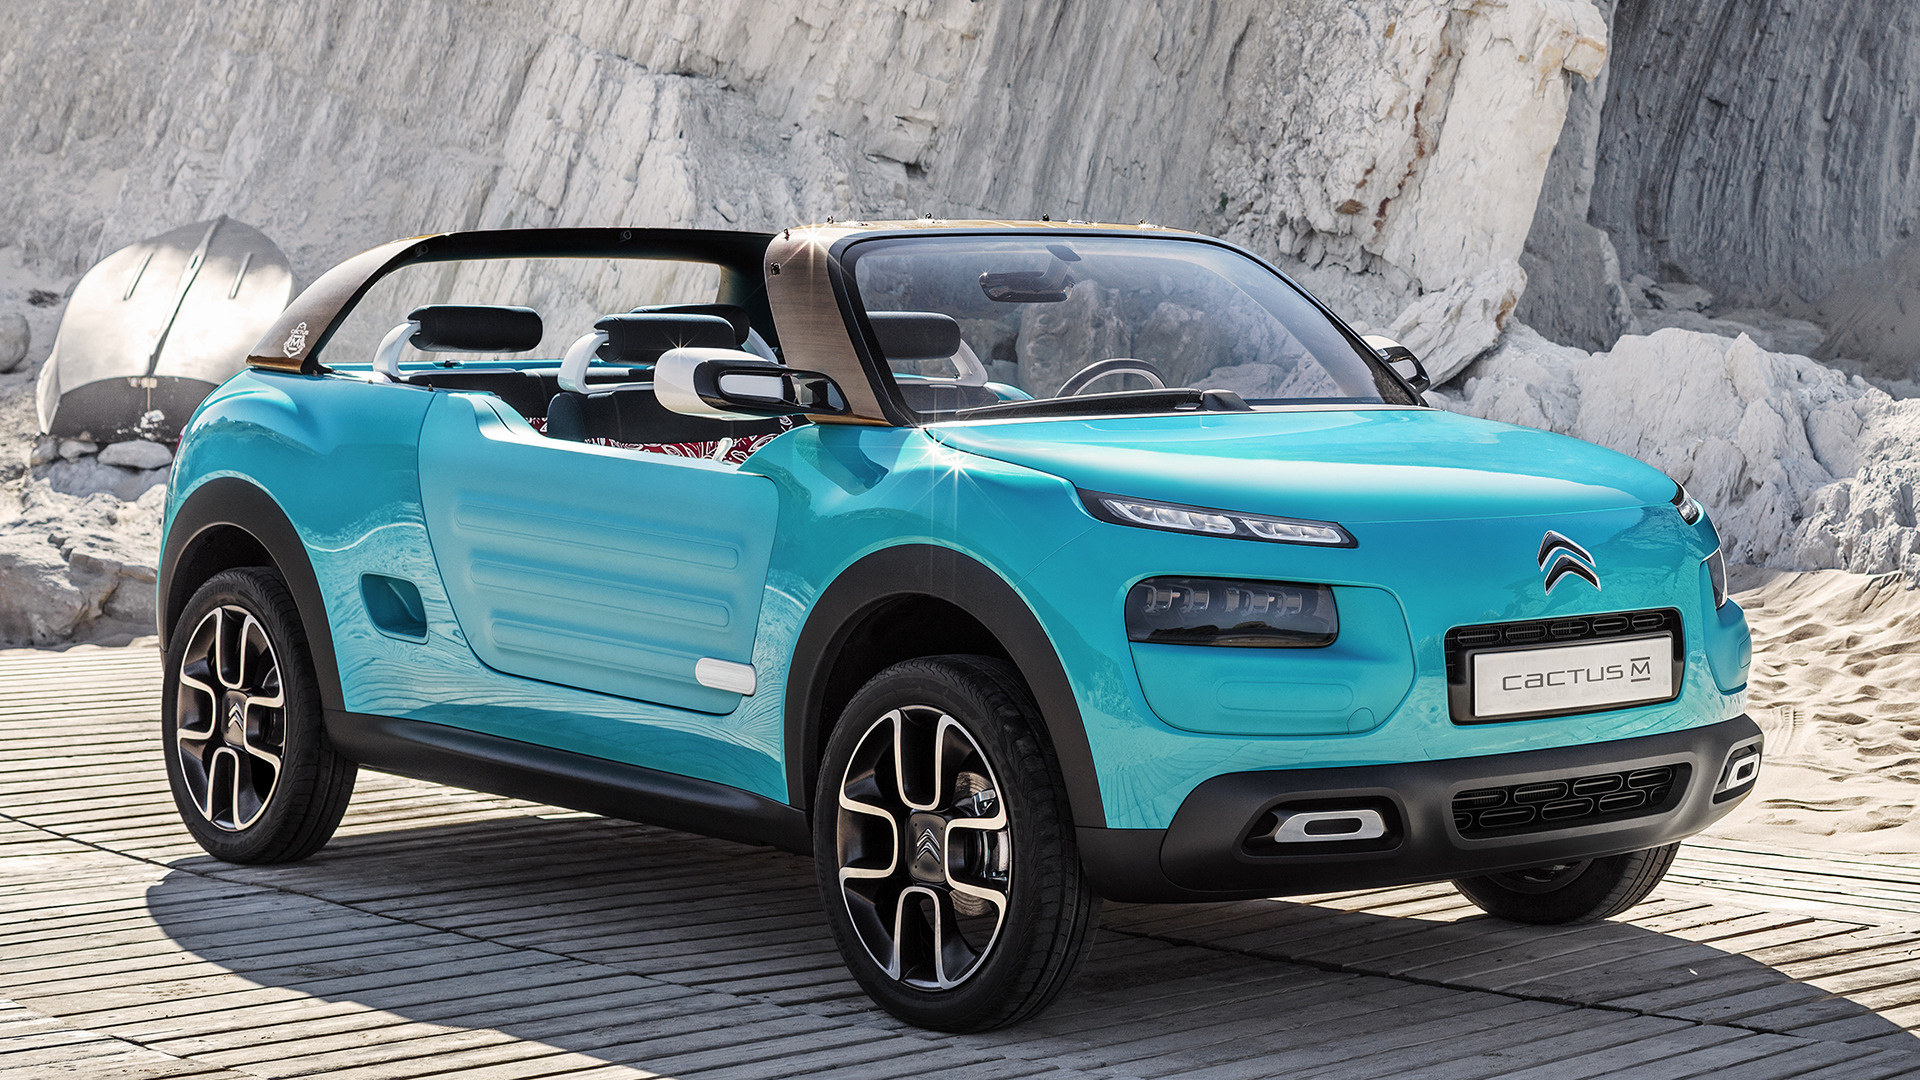 Citroen cactus m concept 2015 wallpapers and hd images for Citroen cactus concept